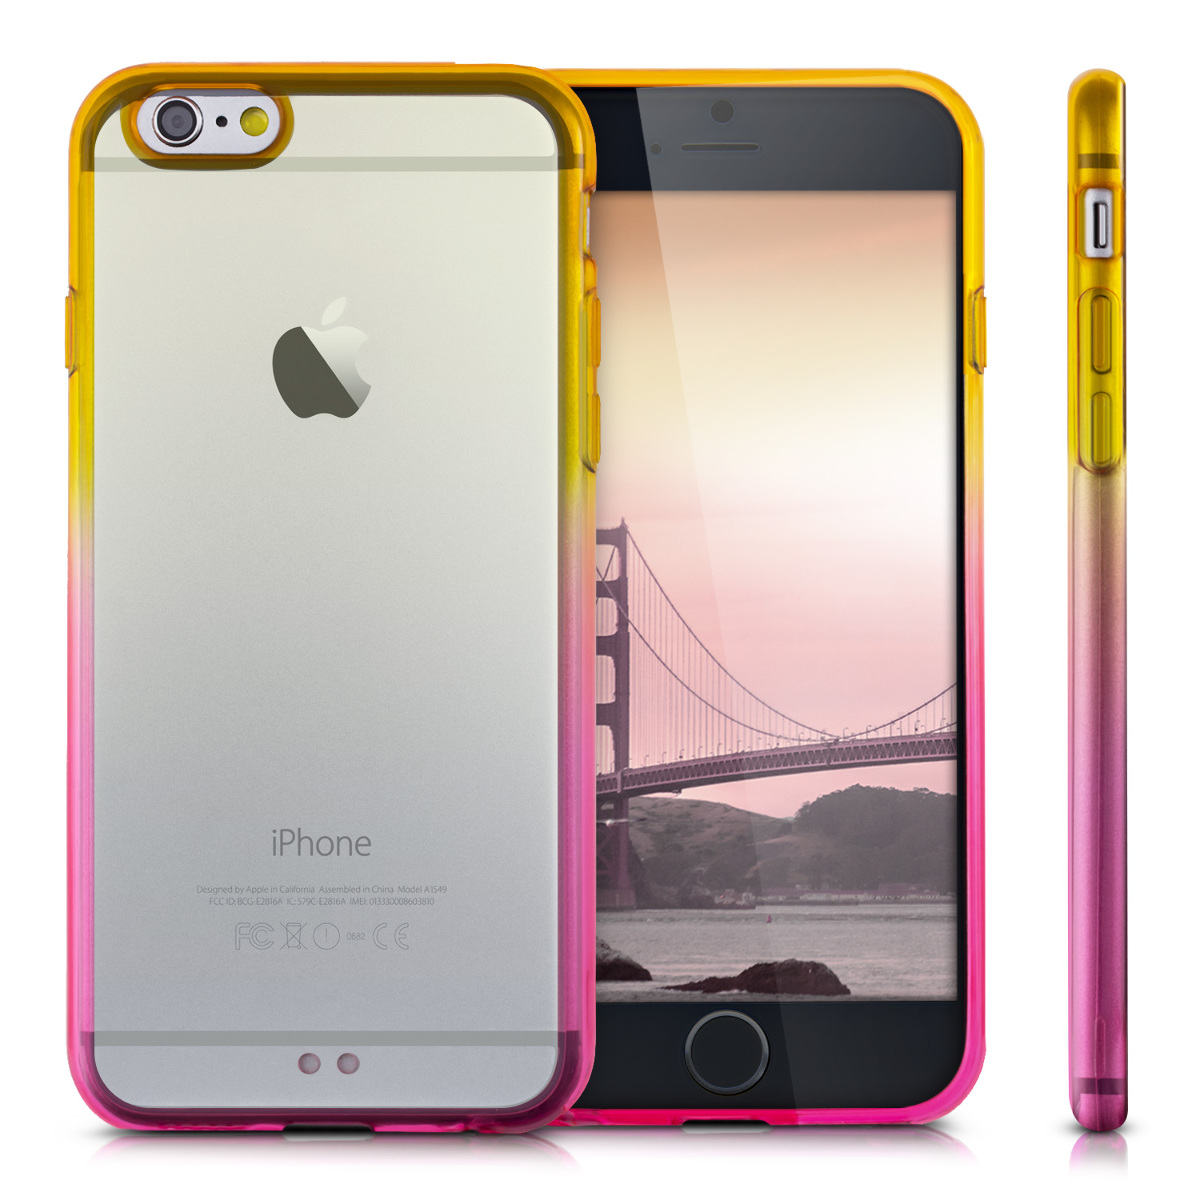 kwmobile-FUNDA-PARA-APPLE-IPHONE-6-6S-TPU-SILICONA-CARCASA-PROTECTORA-ESTUCHE